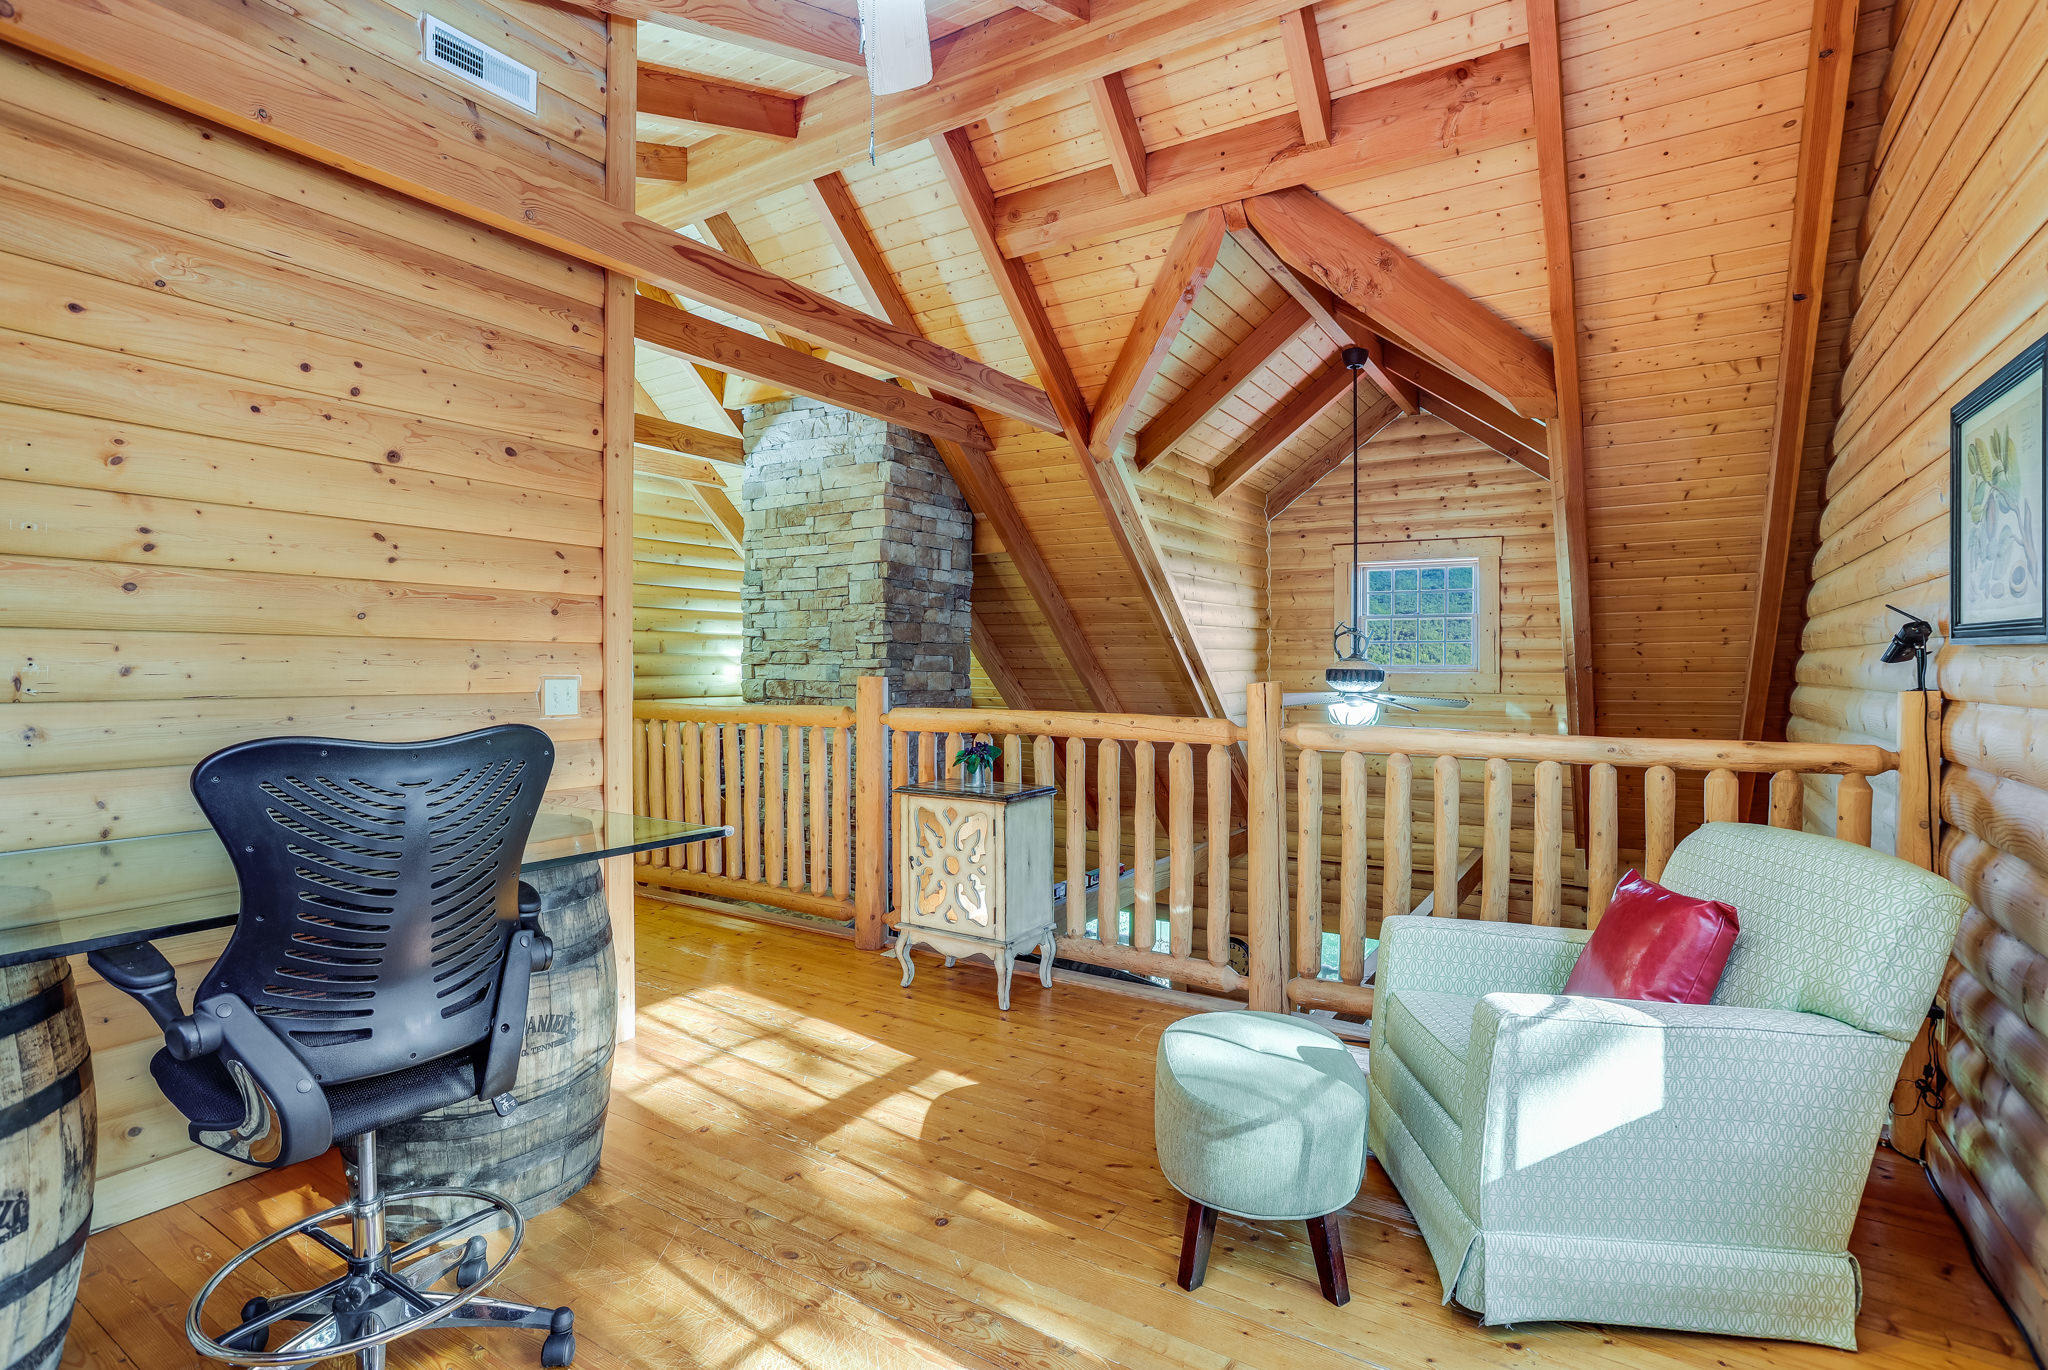 536 Pinnacle Vista Rd, Gatlinburg, Tennessee 37738, 4 Bedrooms Bedrooms, ,3 BathroomsBathrooms,Single Family,For Sale,Pinnacle Vista,1092110